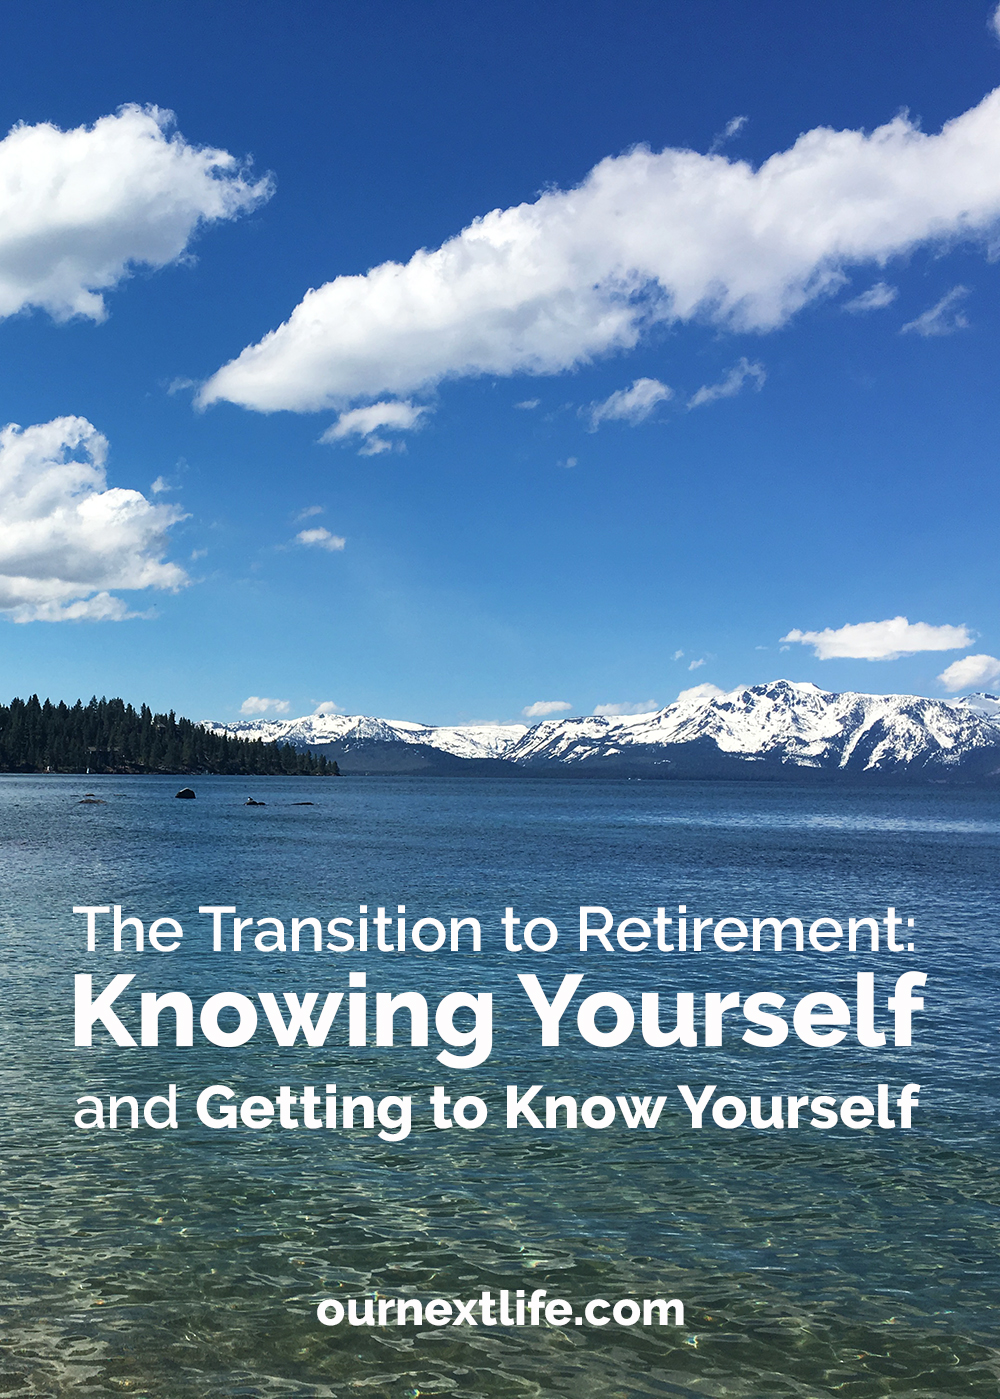 The Transition to Retirement: Knowing Yourself and Getting to Know Yourself // OurNextLife.com, early retirement, work optional, financial independence, adventure, happiness, purpose, FIRE movement